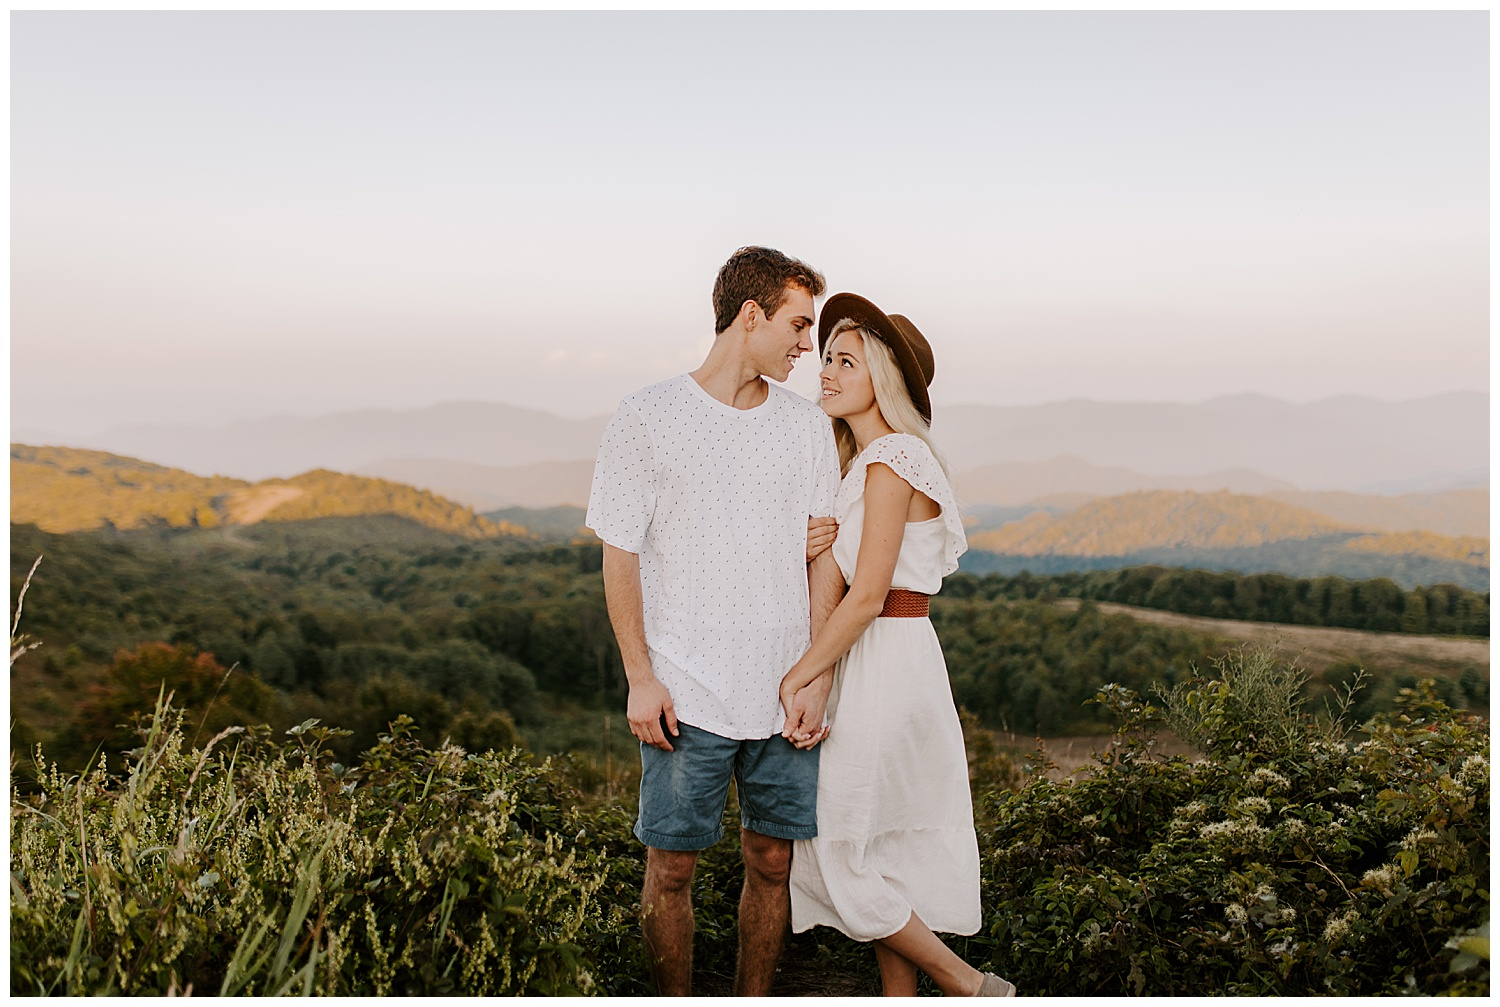 HANNAH_NICK_MAXPATCH_ENGAGEMENT2019-09-05_0007.jpg